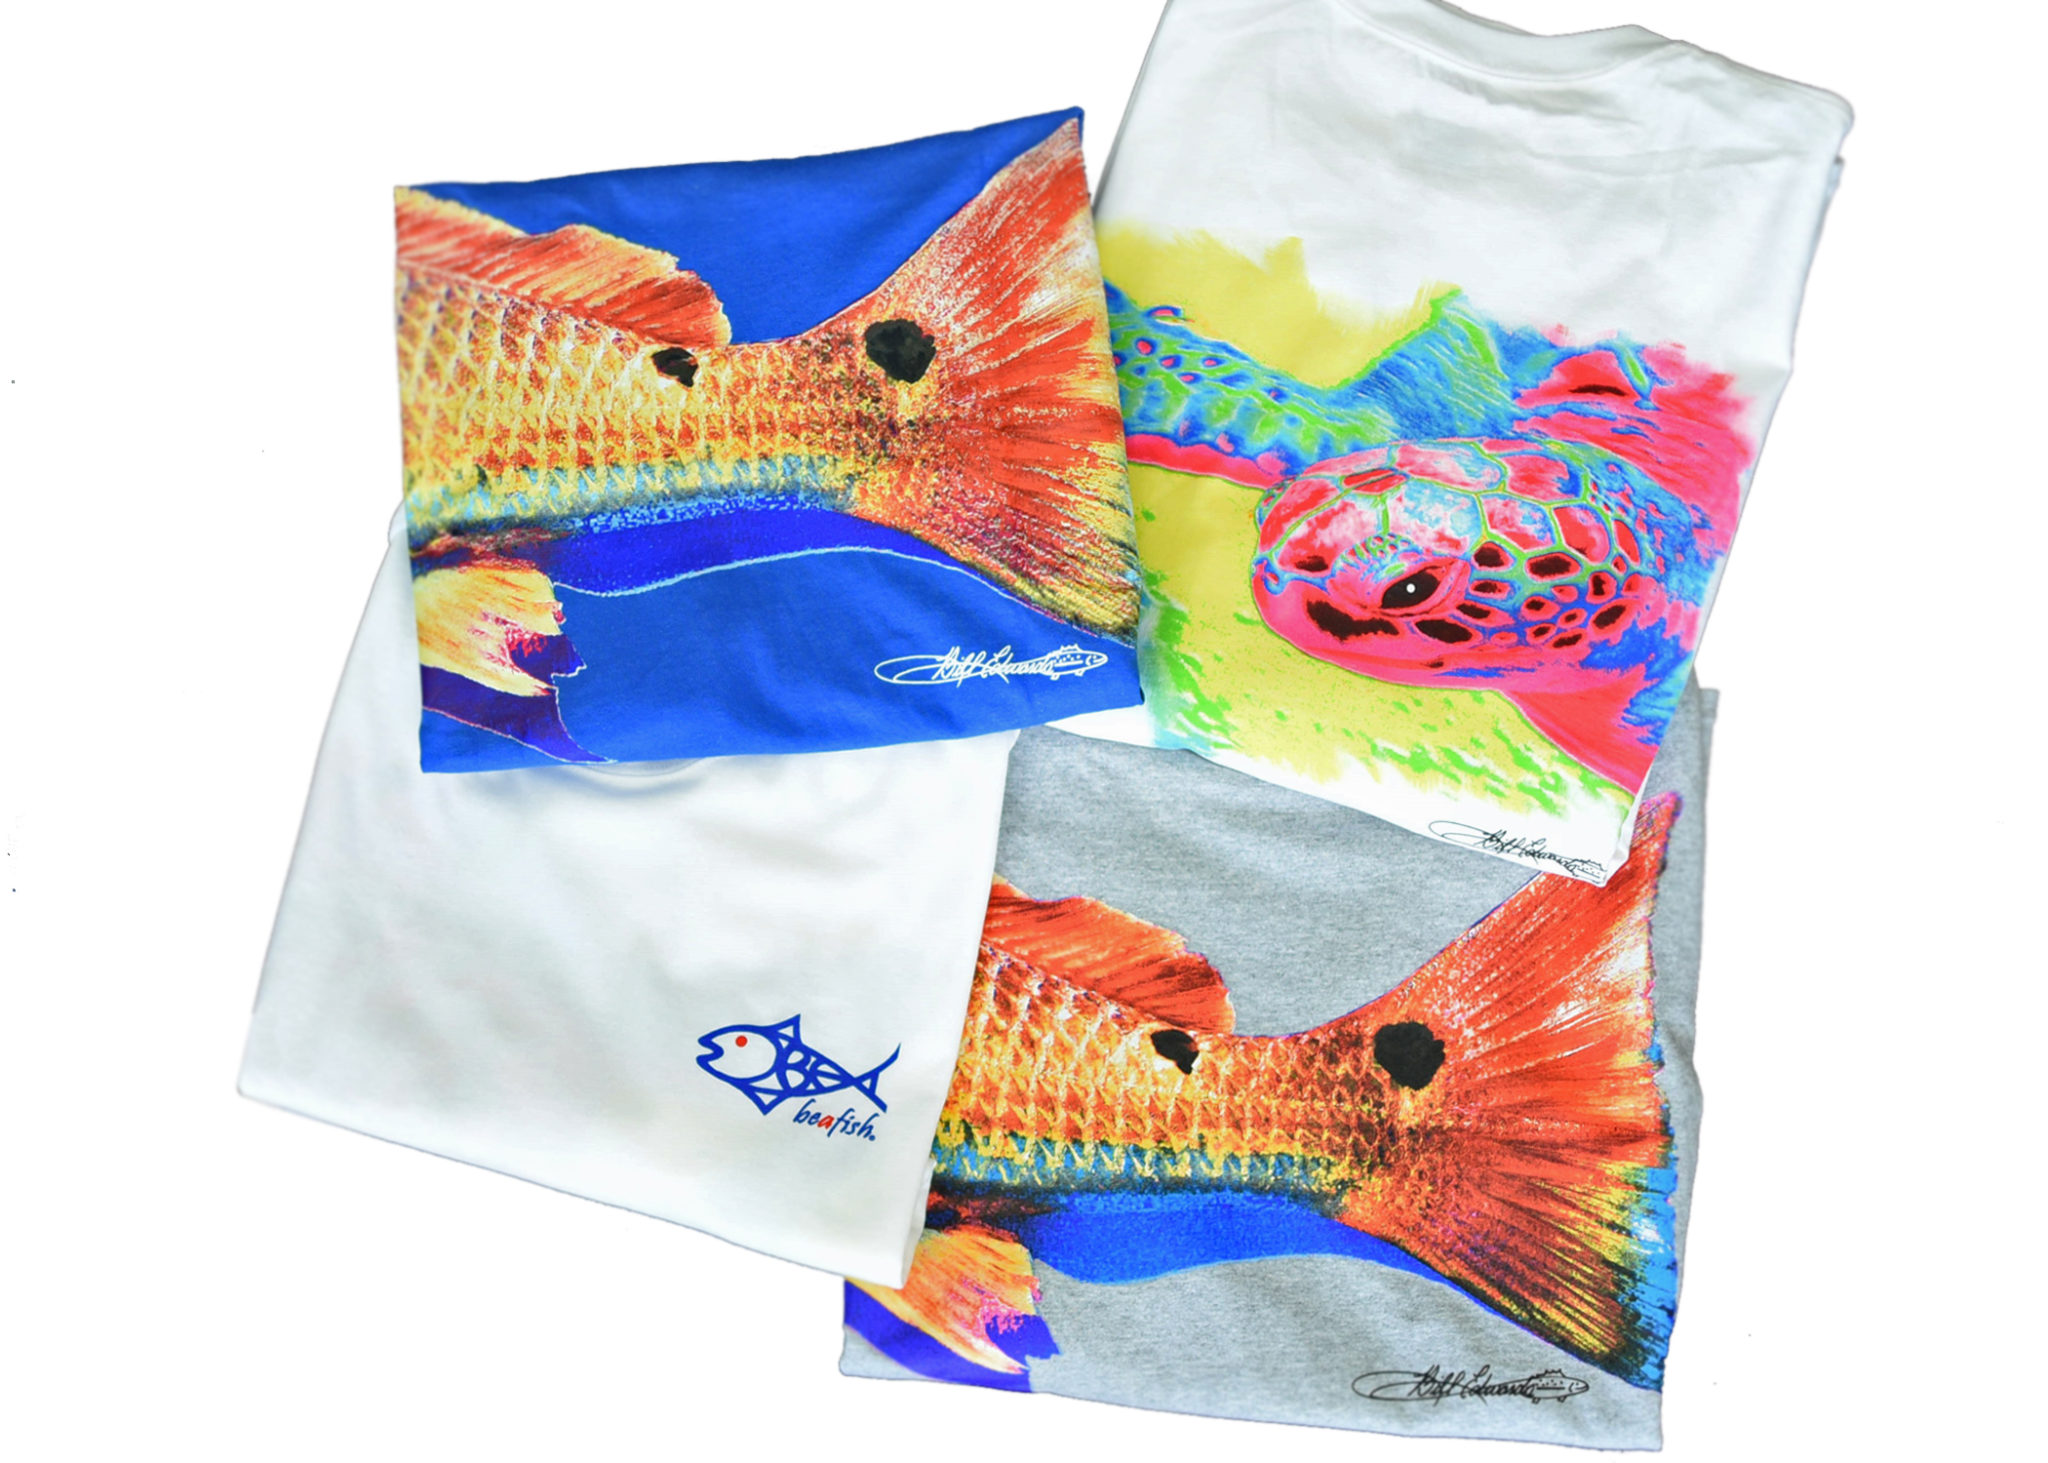 Cotton tees 300x214 Art by Bill Edwards and Beafish Designs